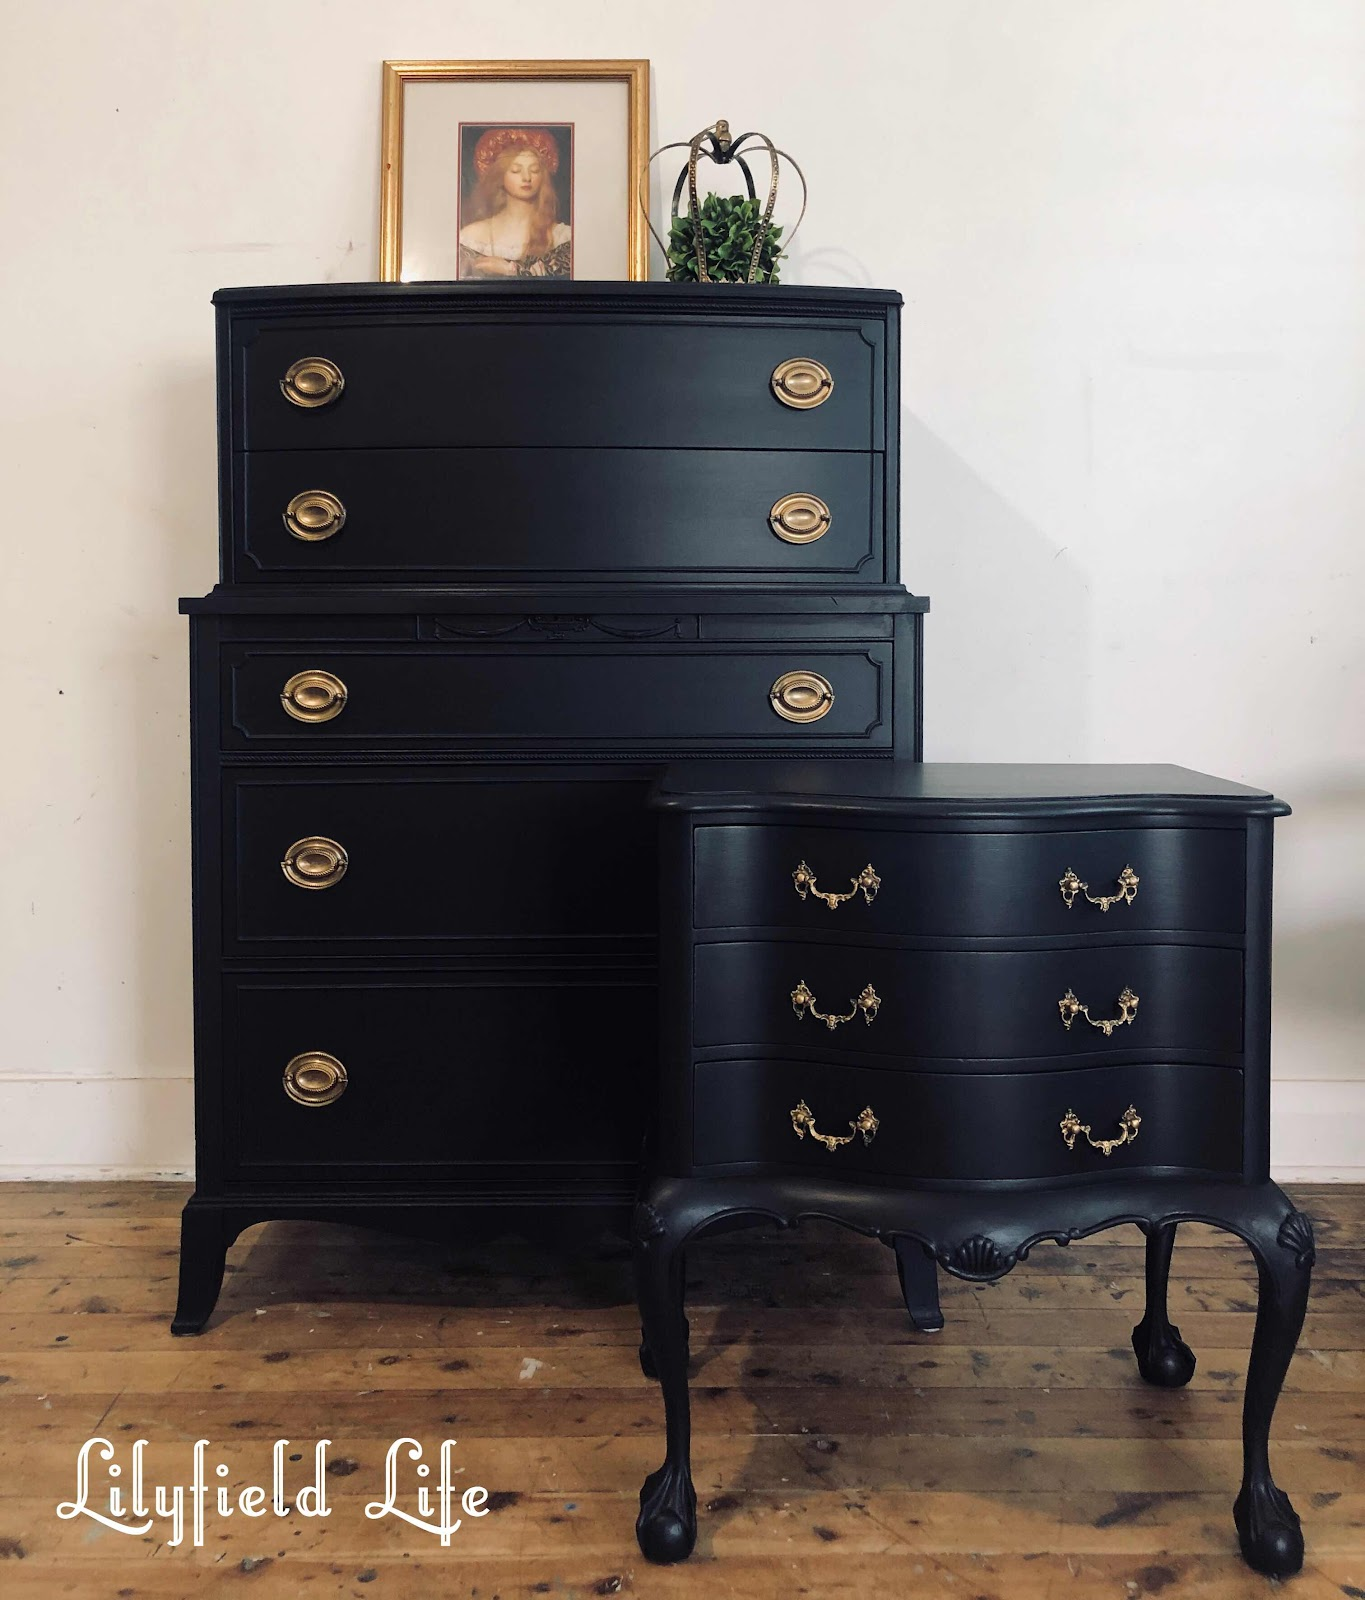 lilyfield life black American bow drawers chalk paint